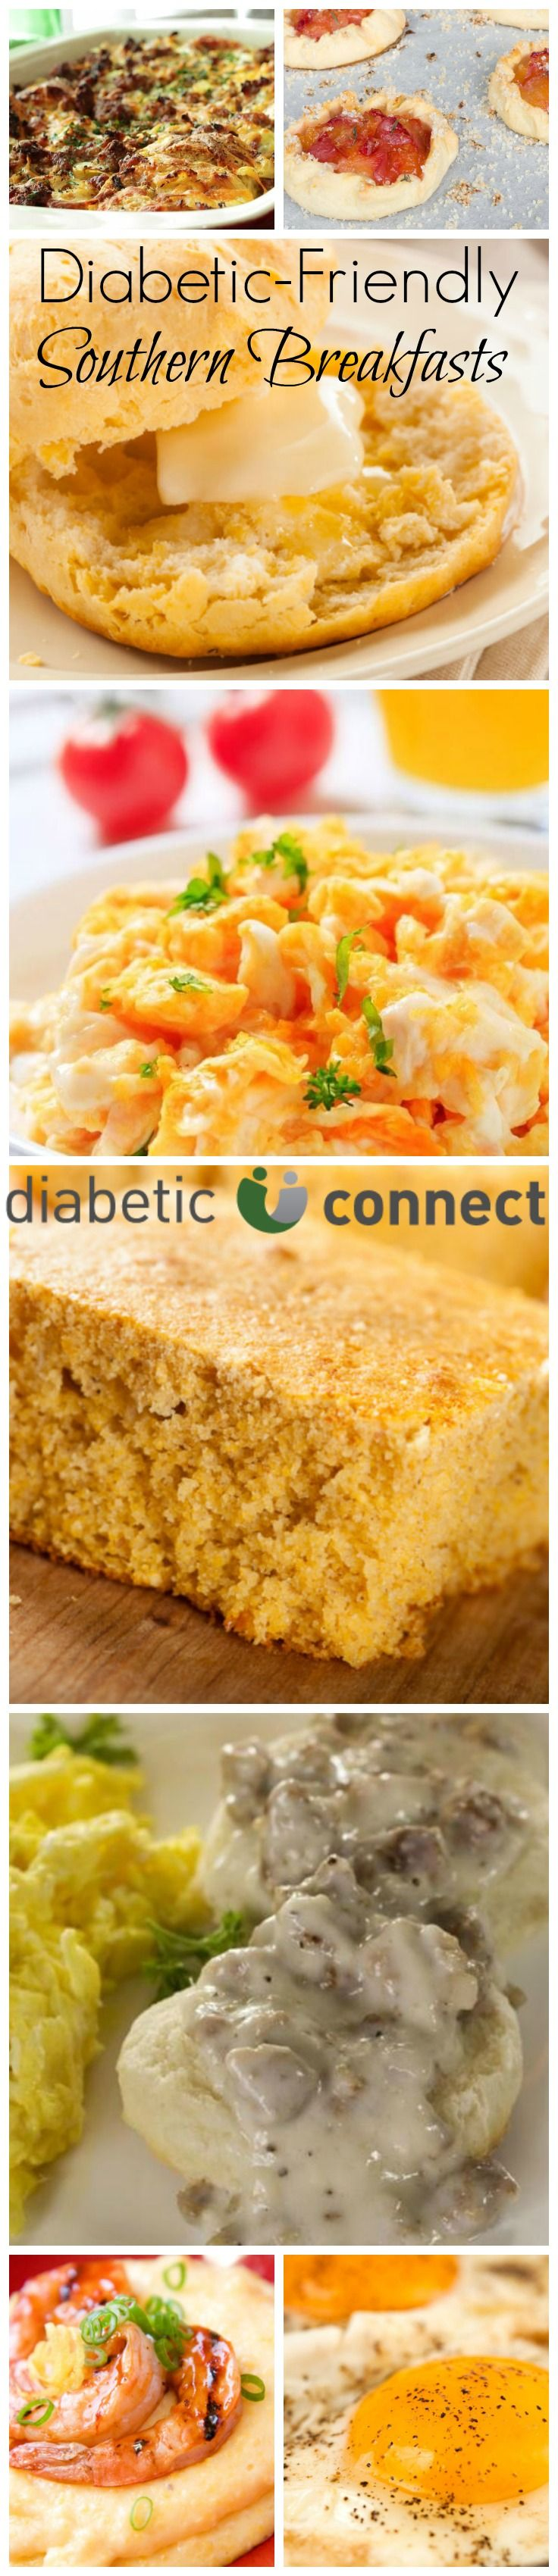 You don't have to be from the South to love southern cooking. And every one of these tempting down-home breakfast favorites can fit your diabetic meal plan. With recipes for Low-Carb Drop Biscuits with Sausage Gravy, Corn Bread and Garlic and Cheese Grits. Find more great diabetic-friendly recipes at diabeticconnect.com #diabetesrecipes #diabetesdiet